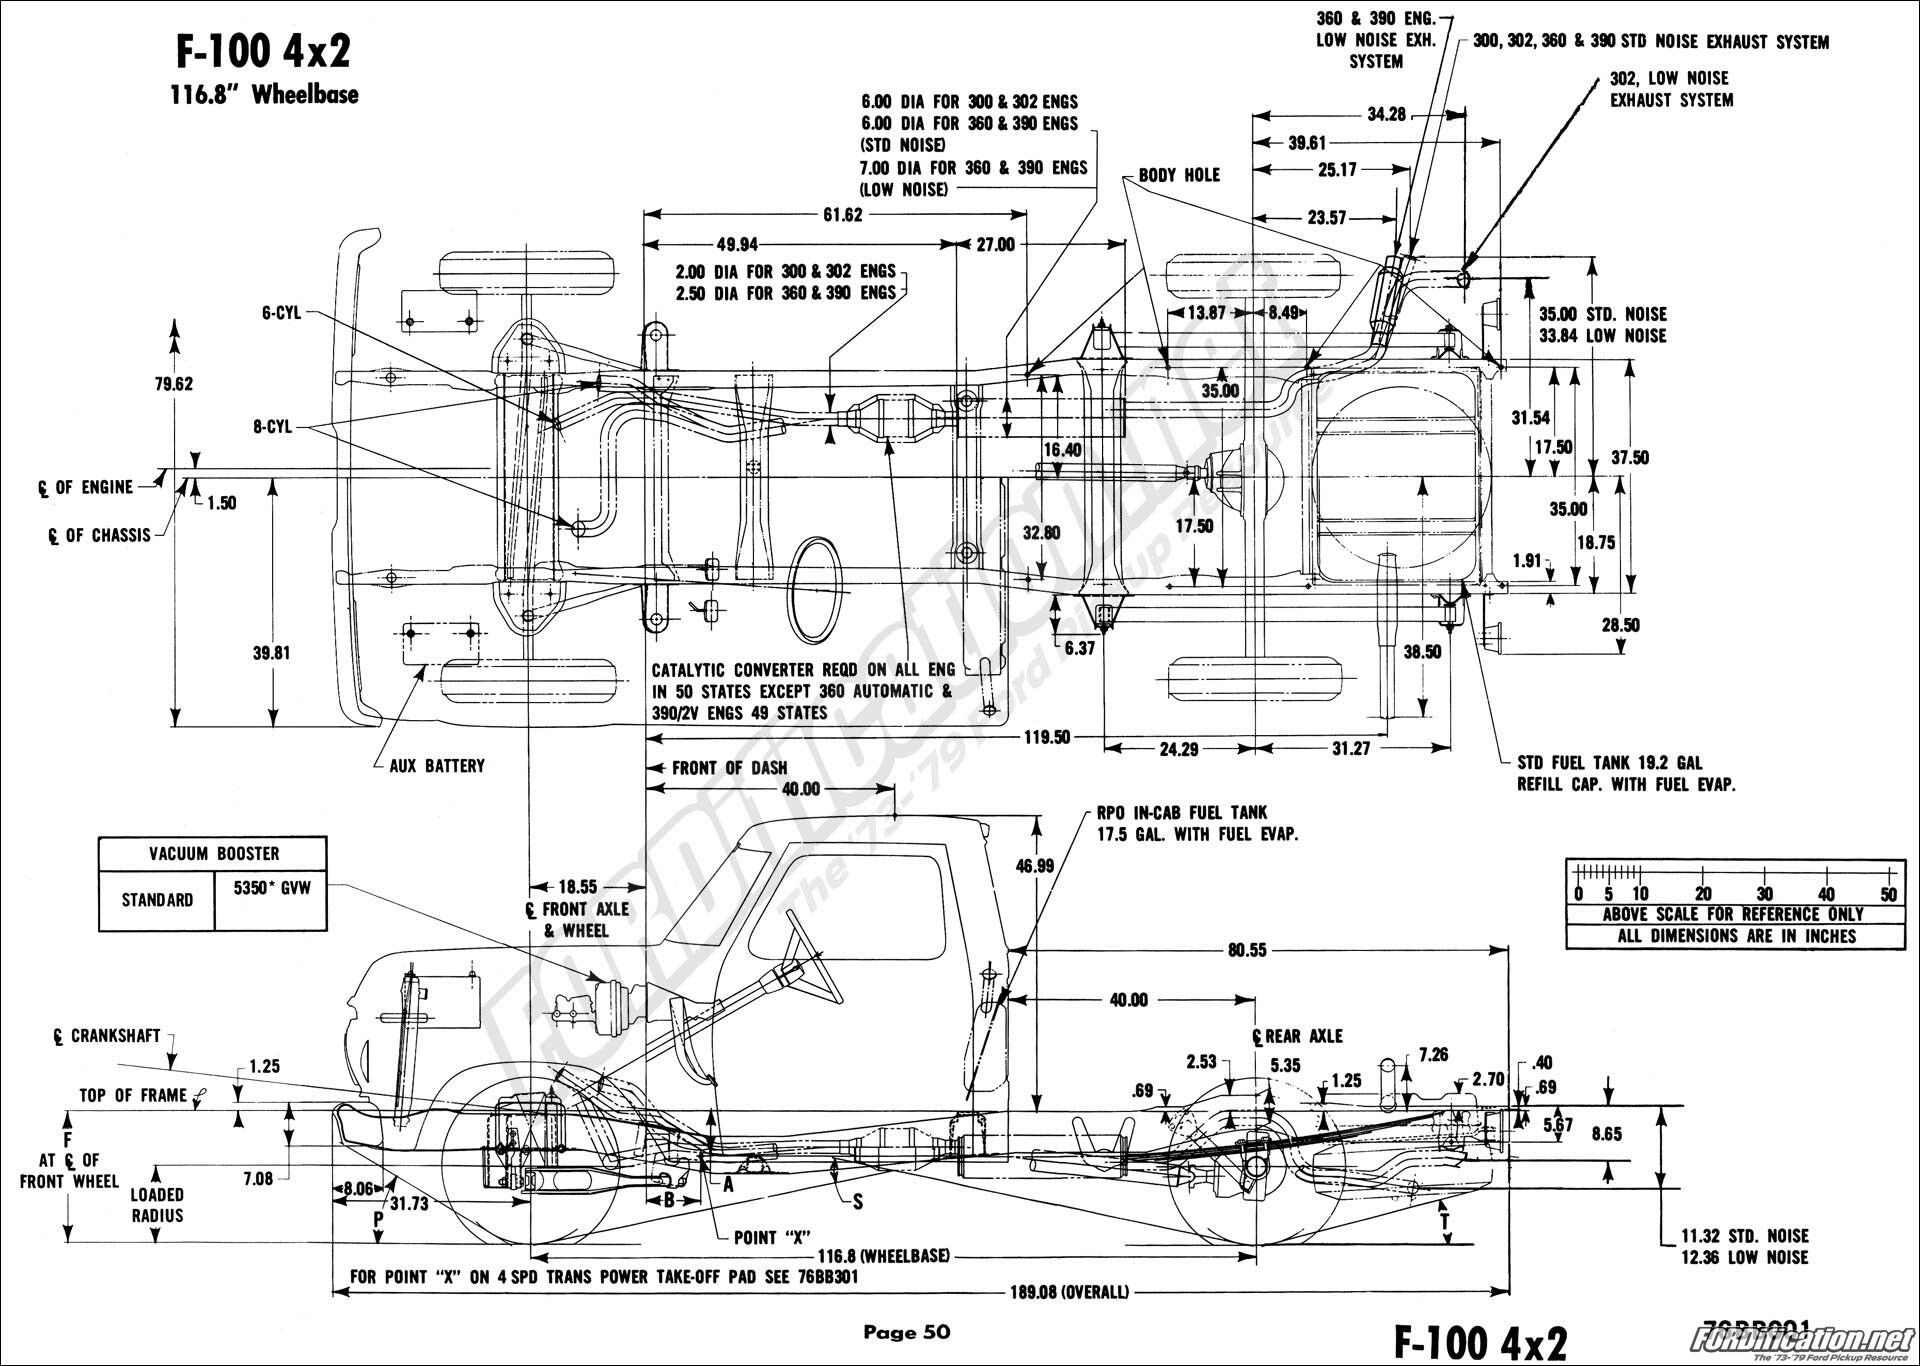 Pin by Sean Hughes on truck project ideas Encs, System